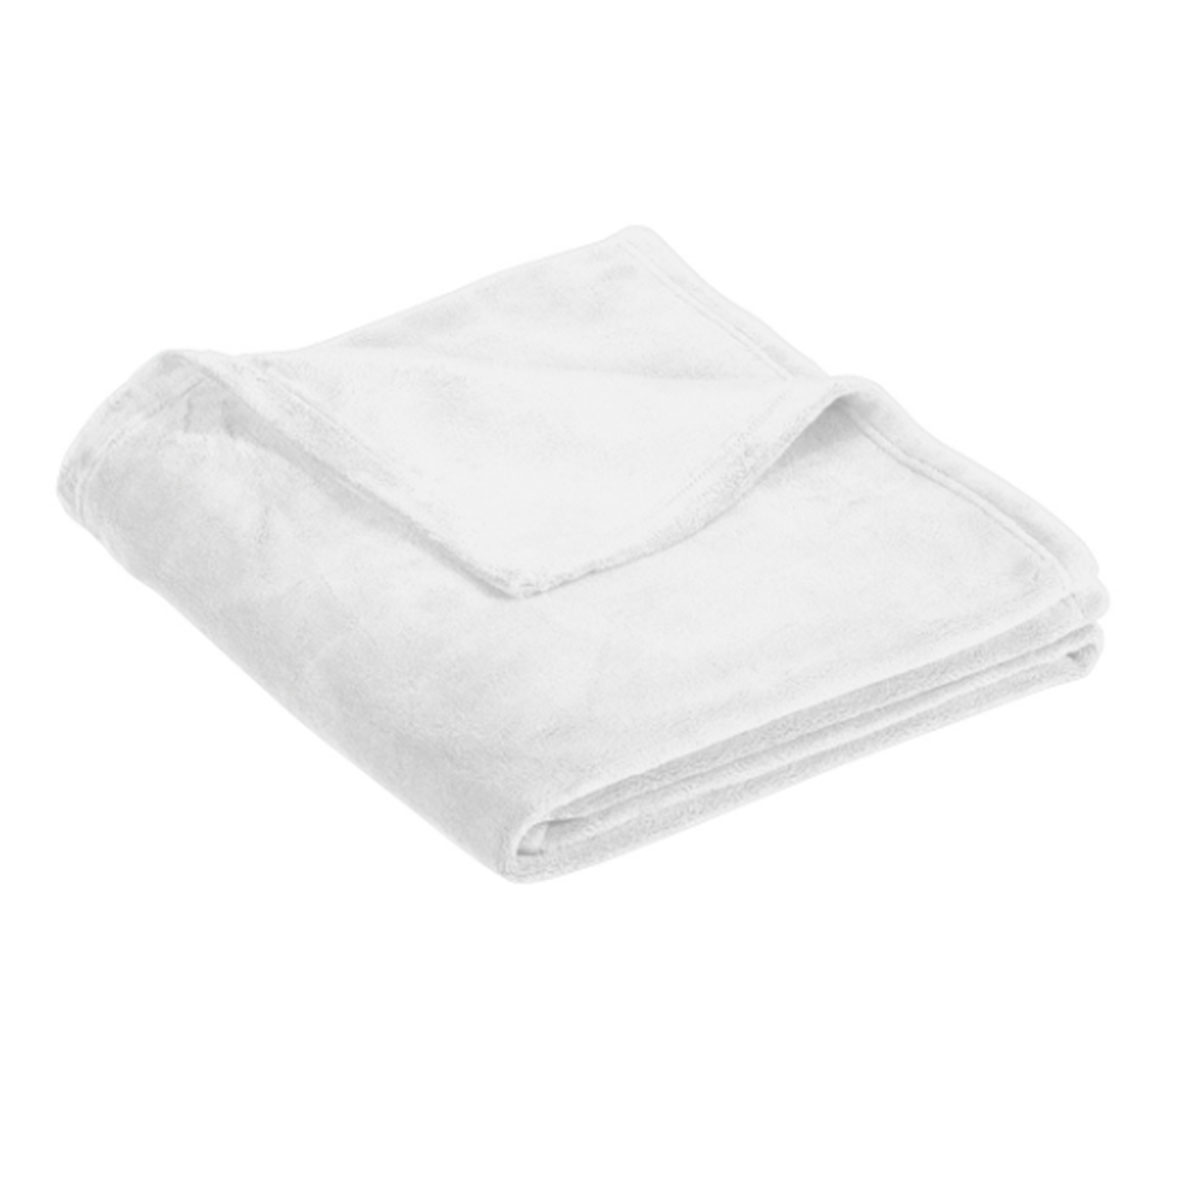 Sanmar ultraplushblanket white